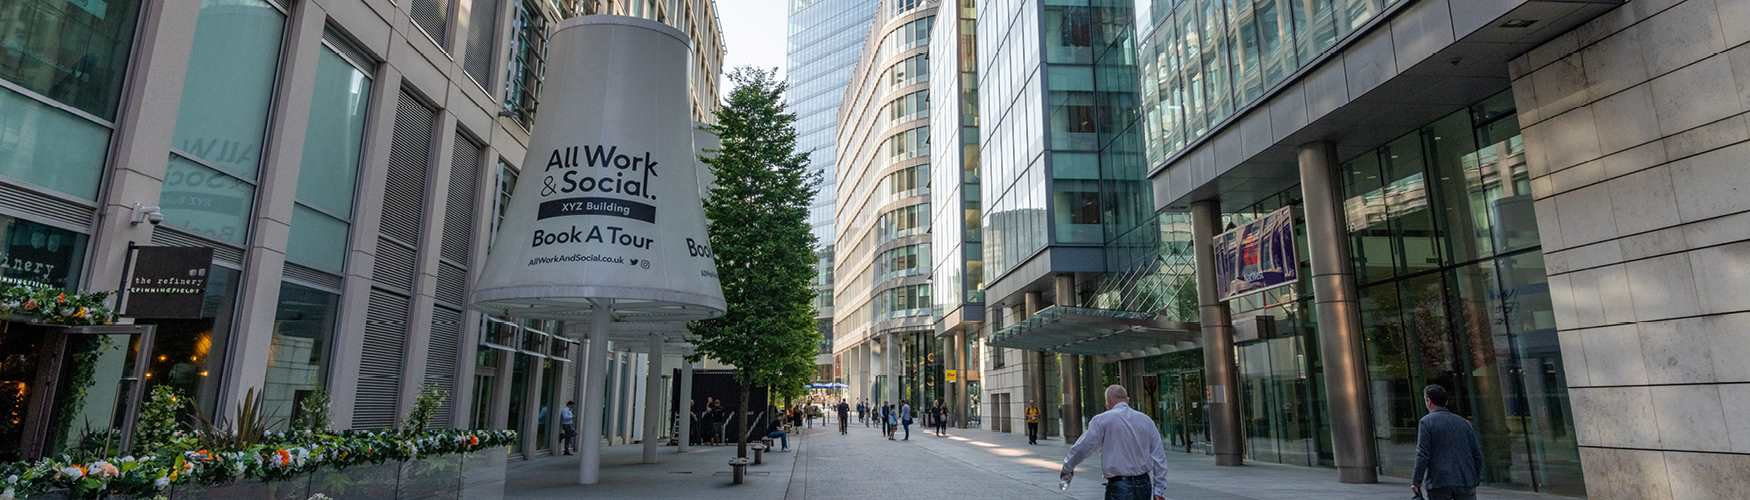 Manchester is a high-quality, low risk investment location